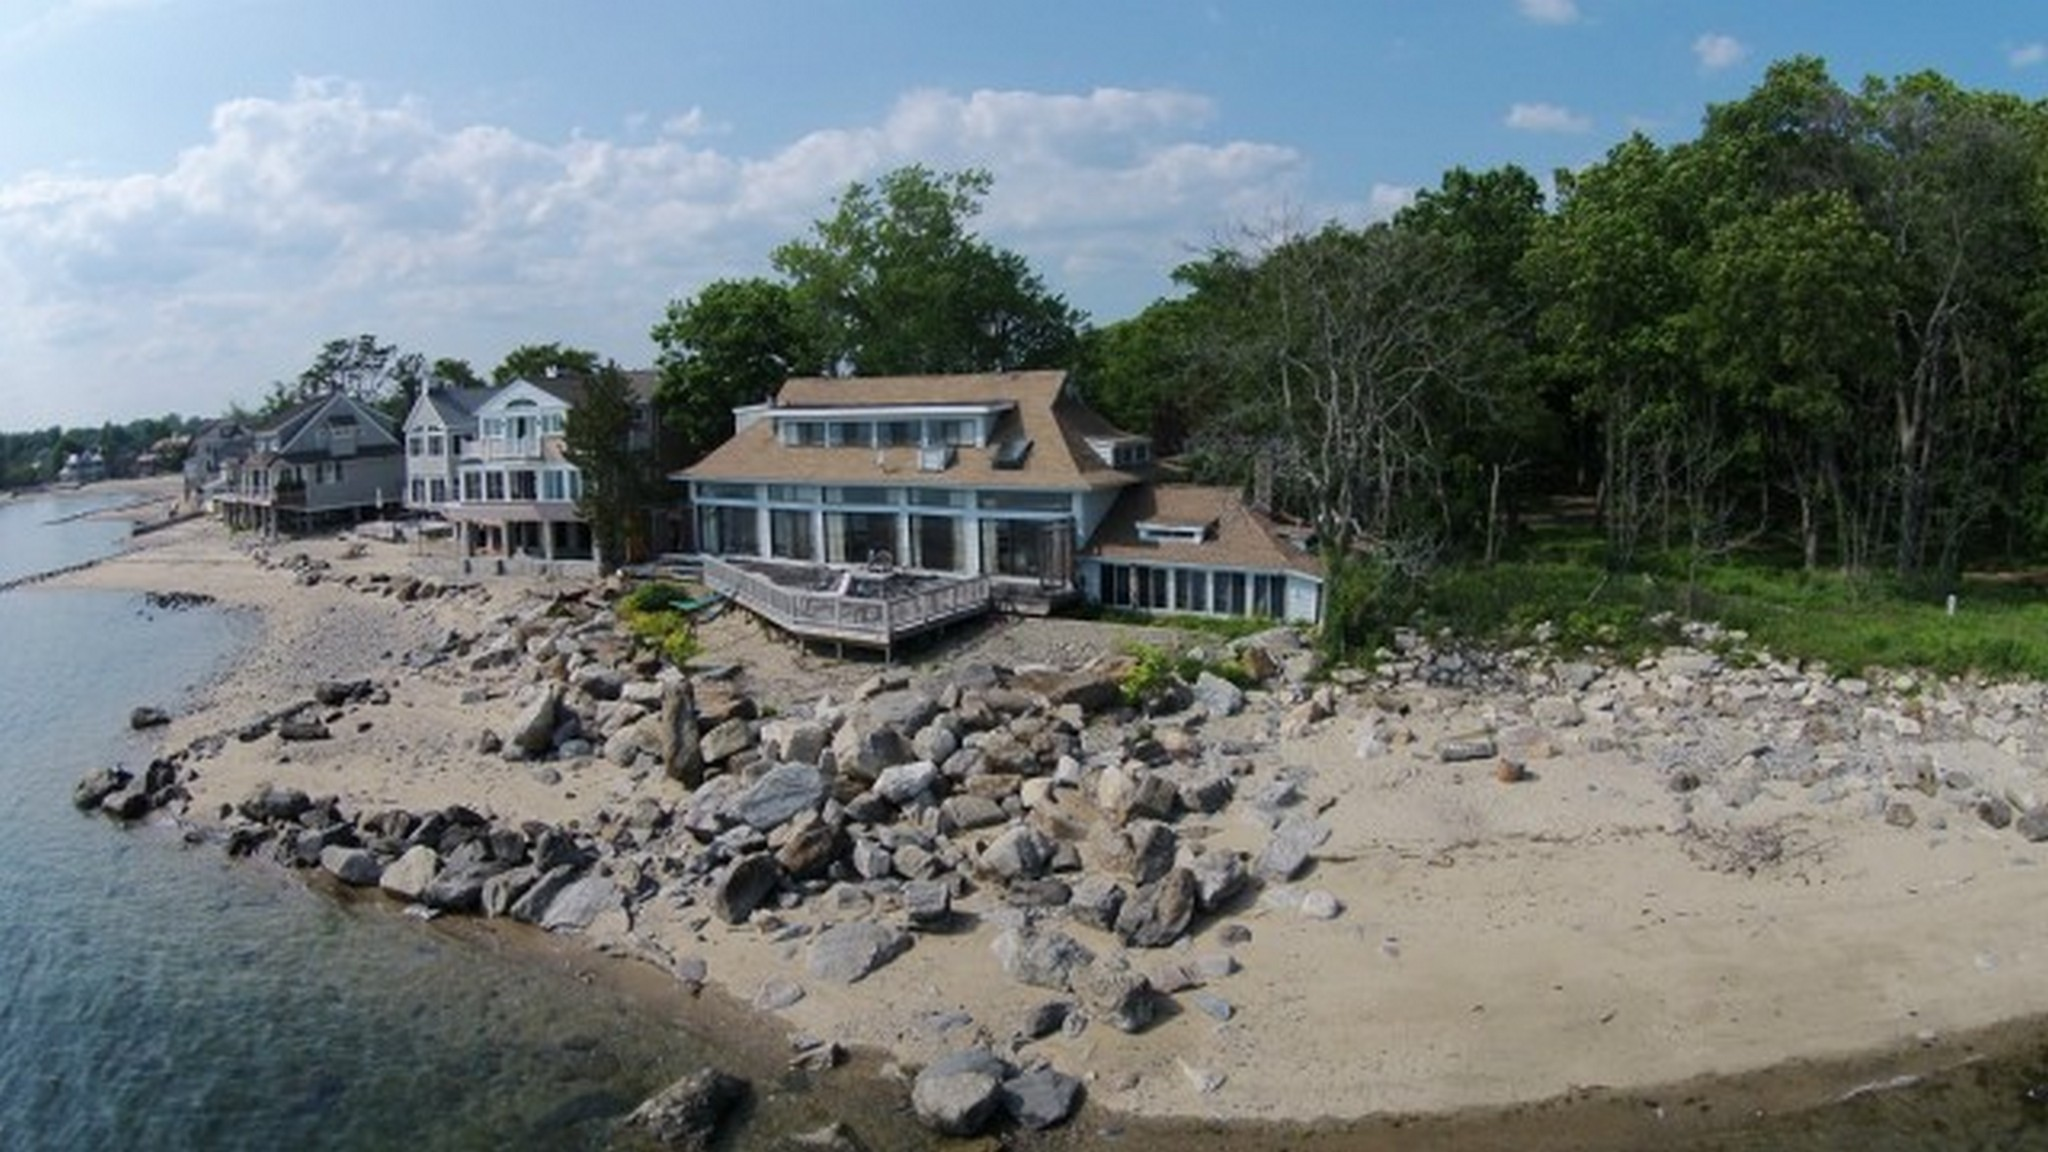 Single Family Home for Sale at 82 Compo Mill Cove Westport, Connecticut 06880 United States